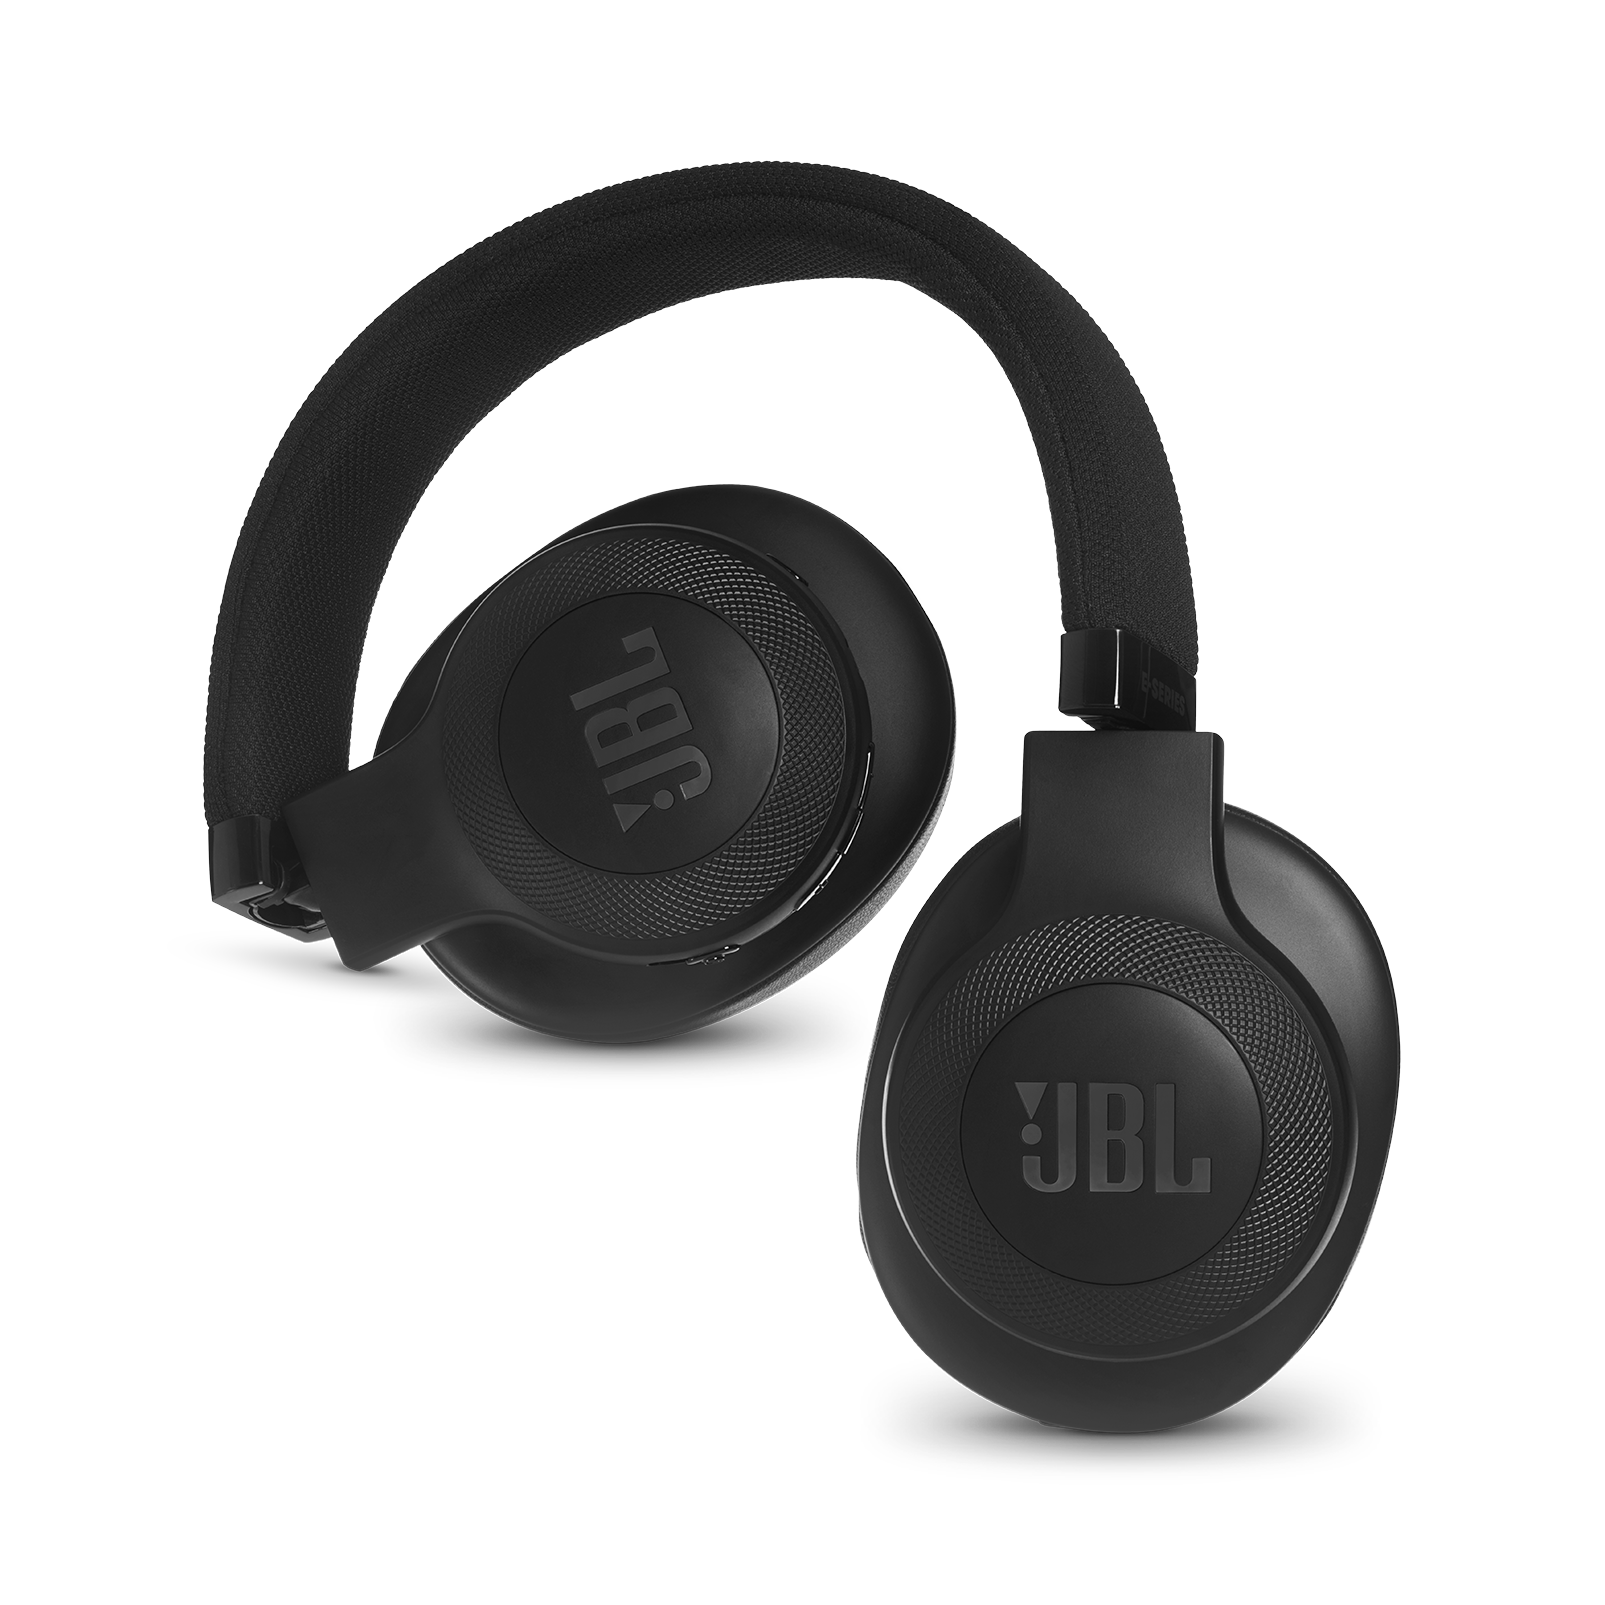 JBL E55BT - Black - Wireless over-ear headphones - Detailshot 1